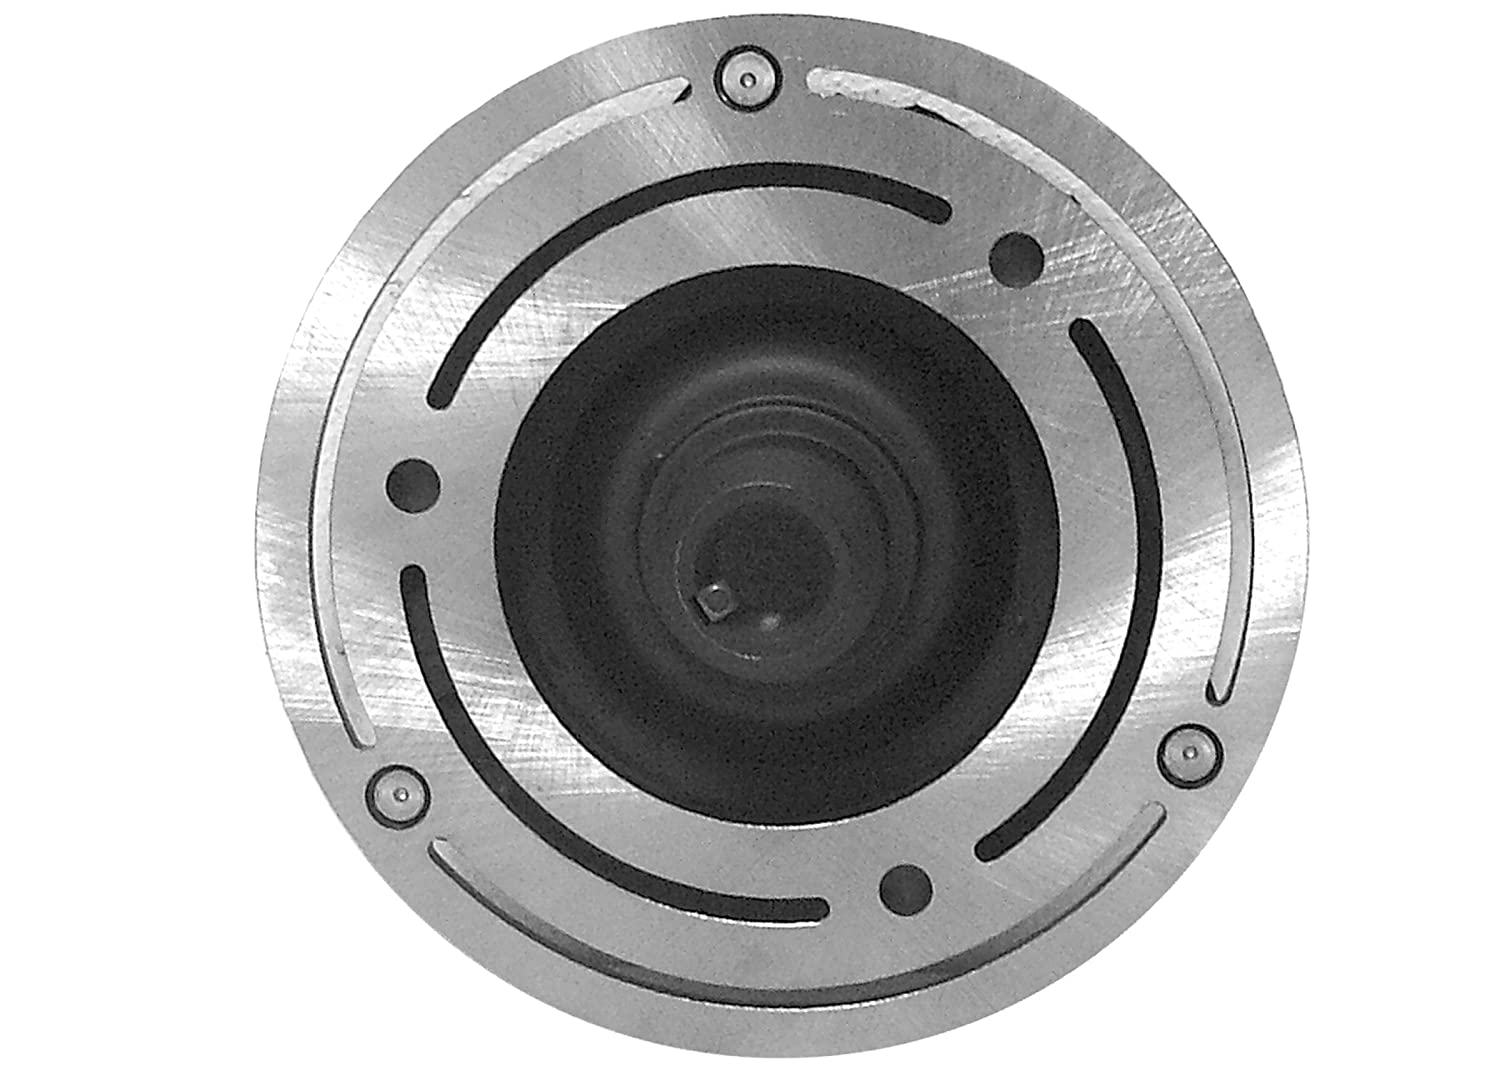 ACDelco 15 - 40048 gm Original Equipment embrague del compresor de aire acondicionado: Amazon.es: Coche y moto